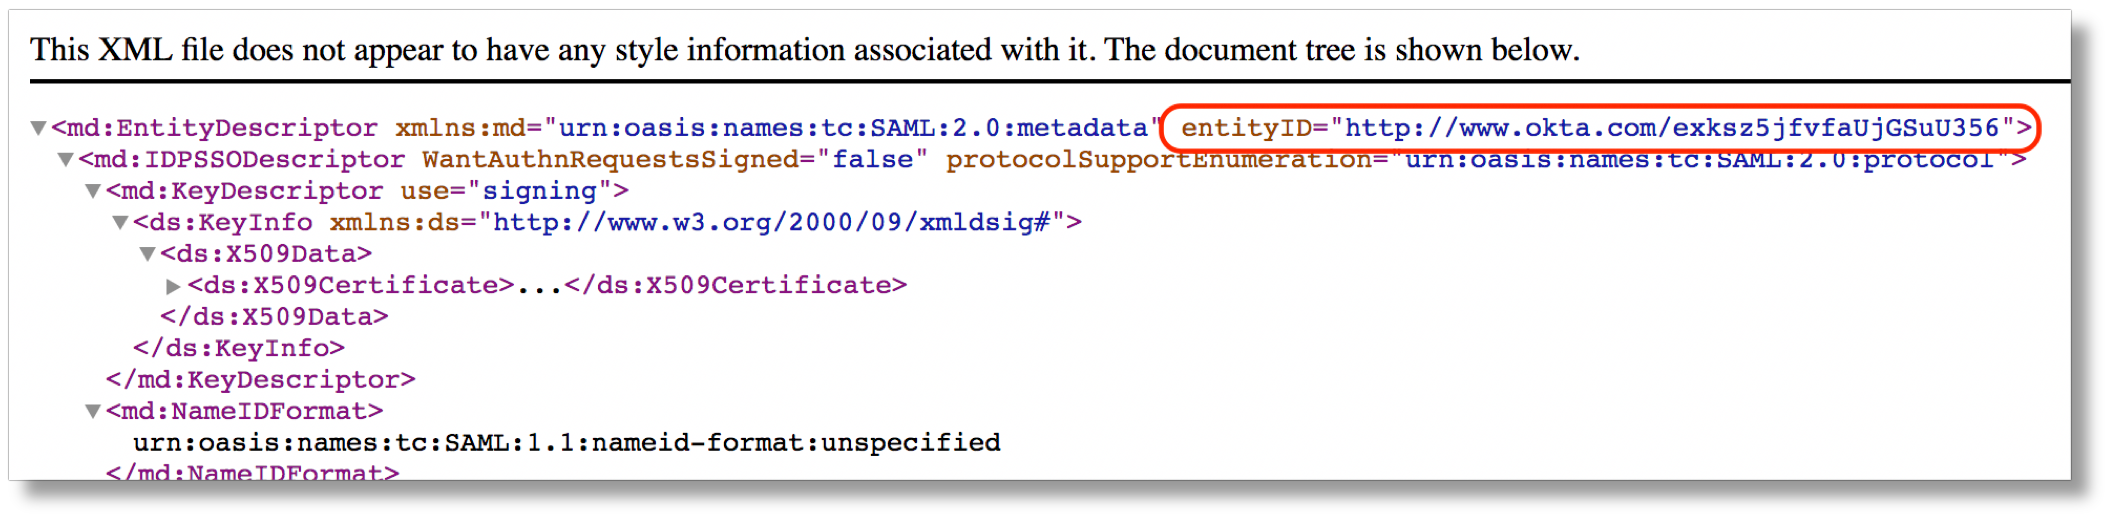 metadata file showing entity id